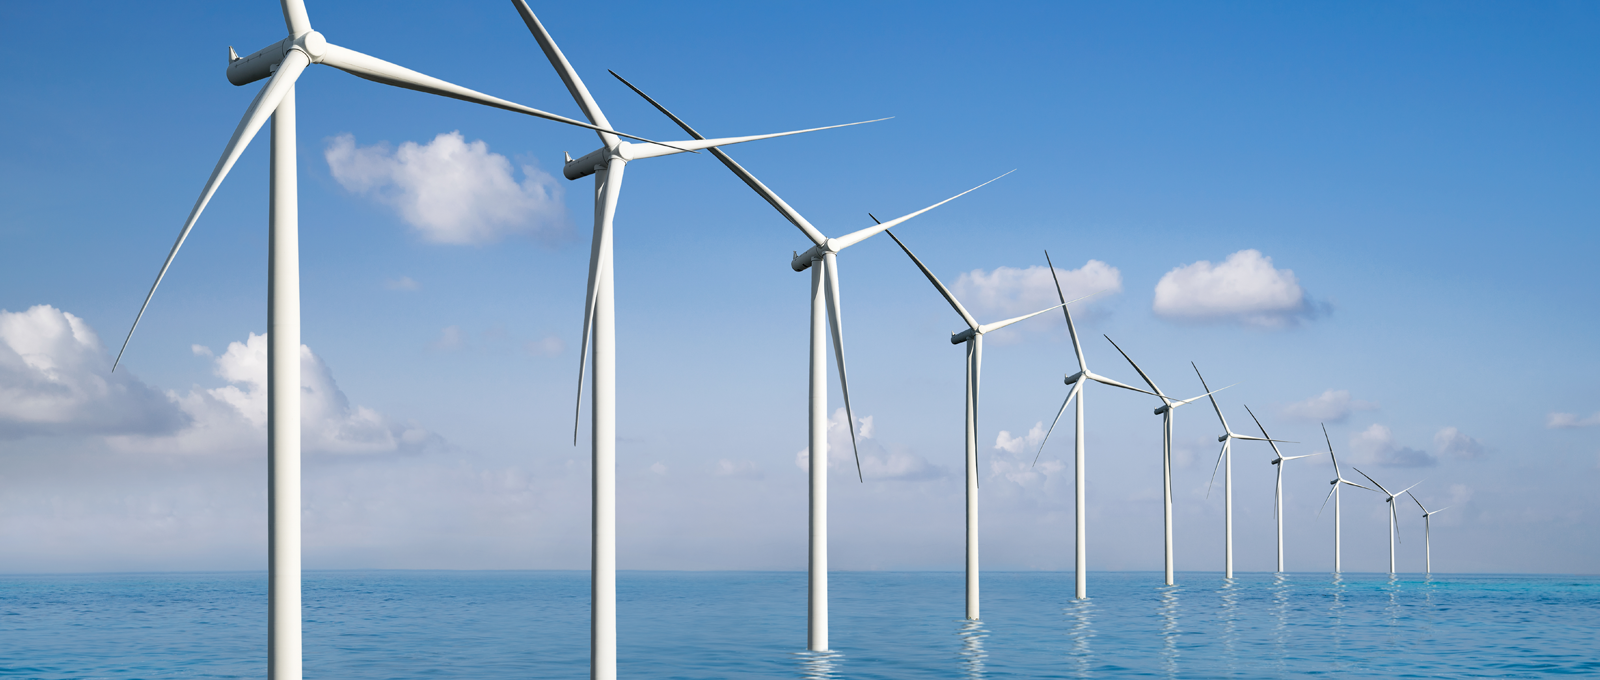 ACP Offshore WINDPOWER Conference 2021 in Boston